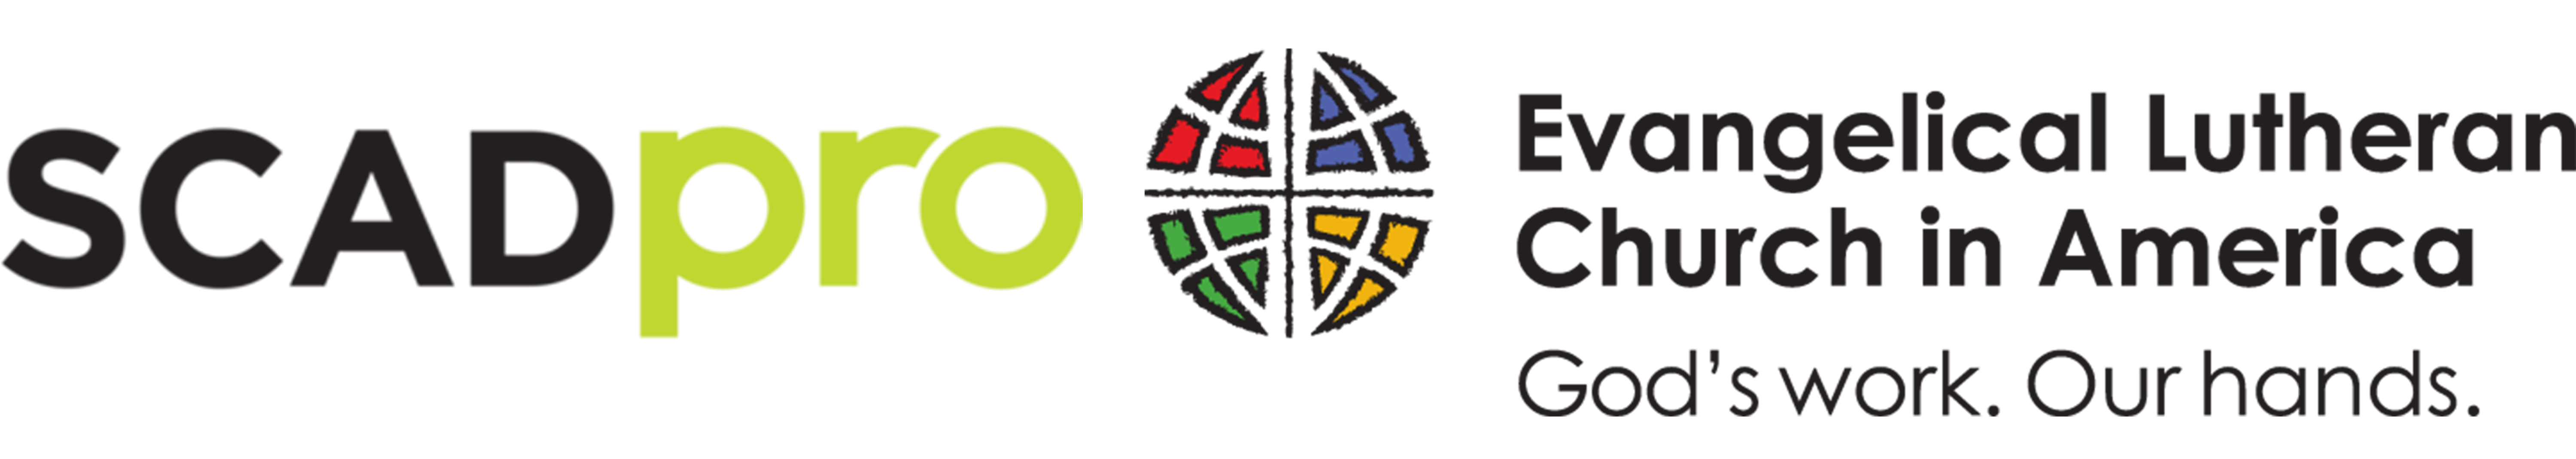 SCAD Pro and Evangelical Lutheran Church in America logo